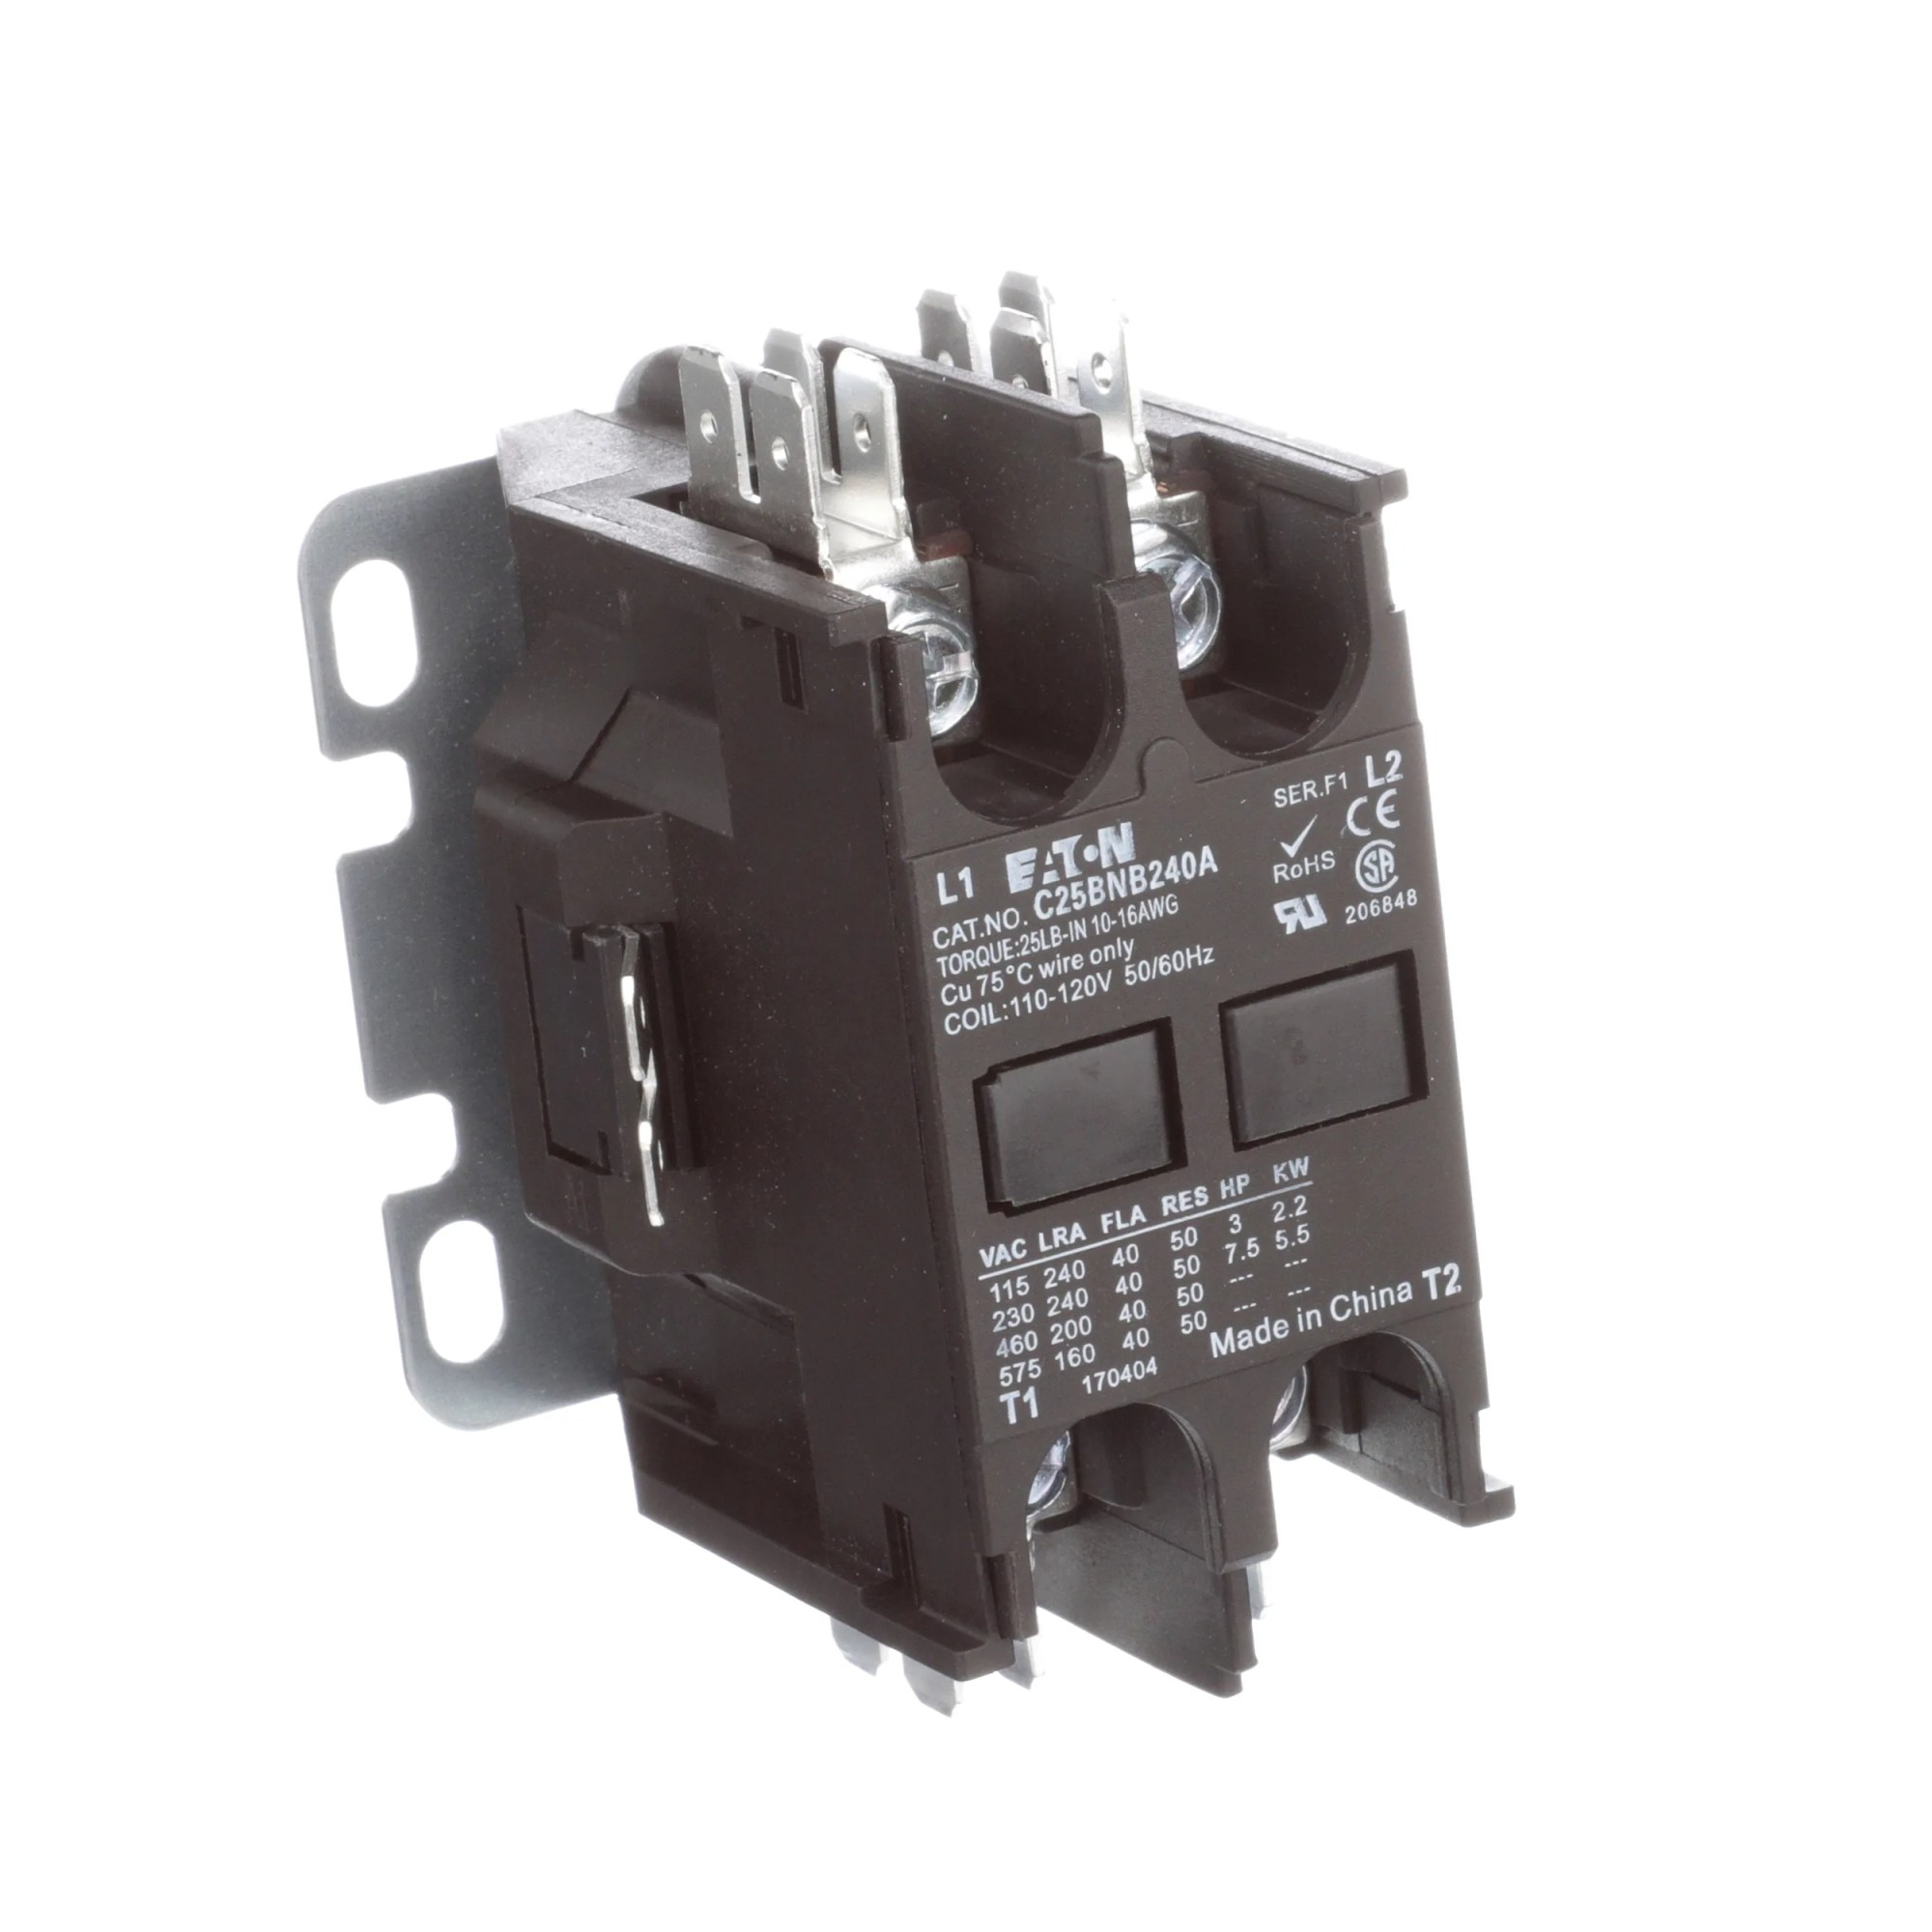 hight resolution of eaton cutler hammer c25bnb240a definite purpose control contactor 2 pole 40a 120vac coil allied electronics automation